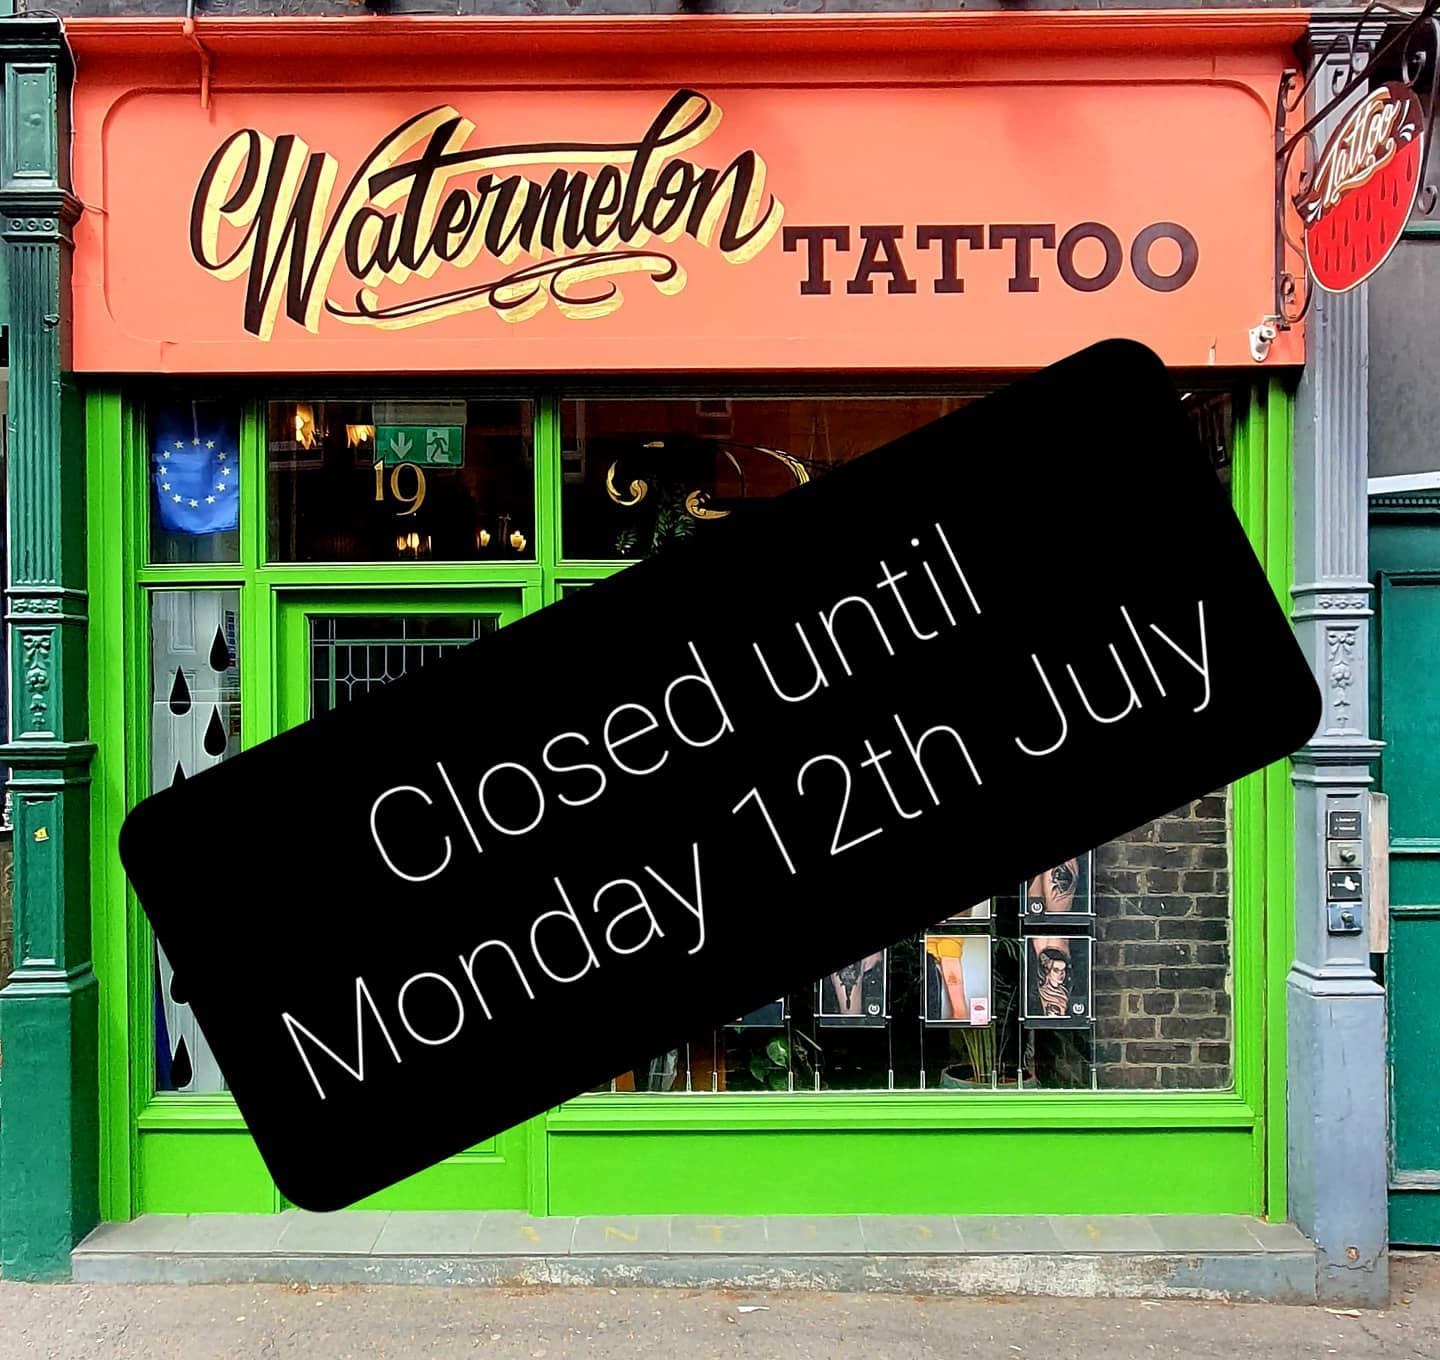 We are closed until Monday 12th July for a much needed rest with the family!